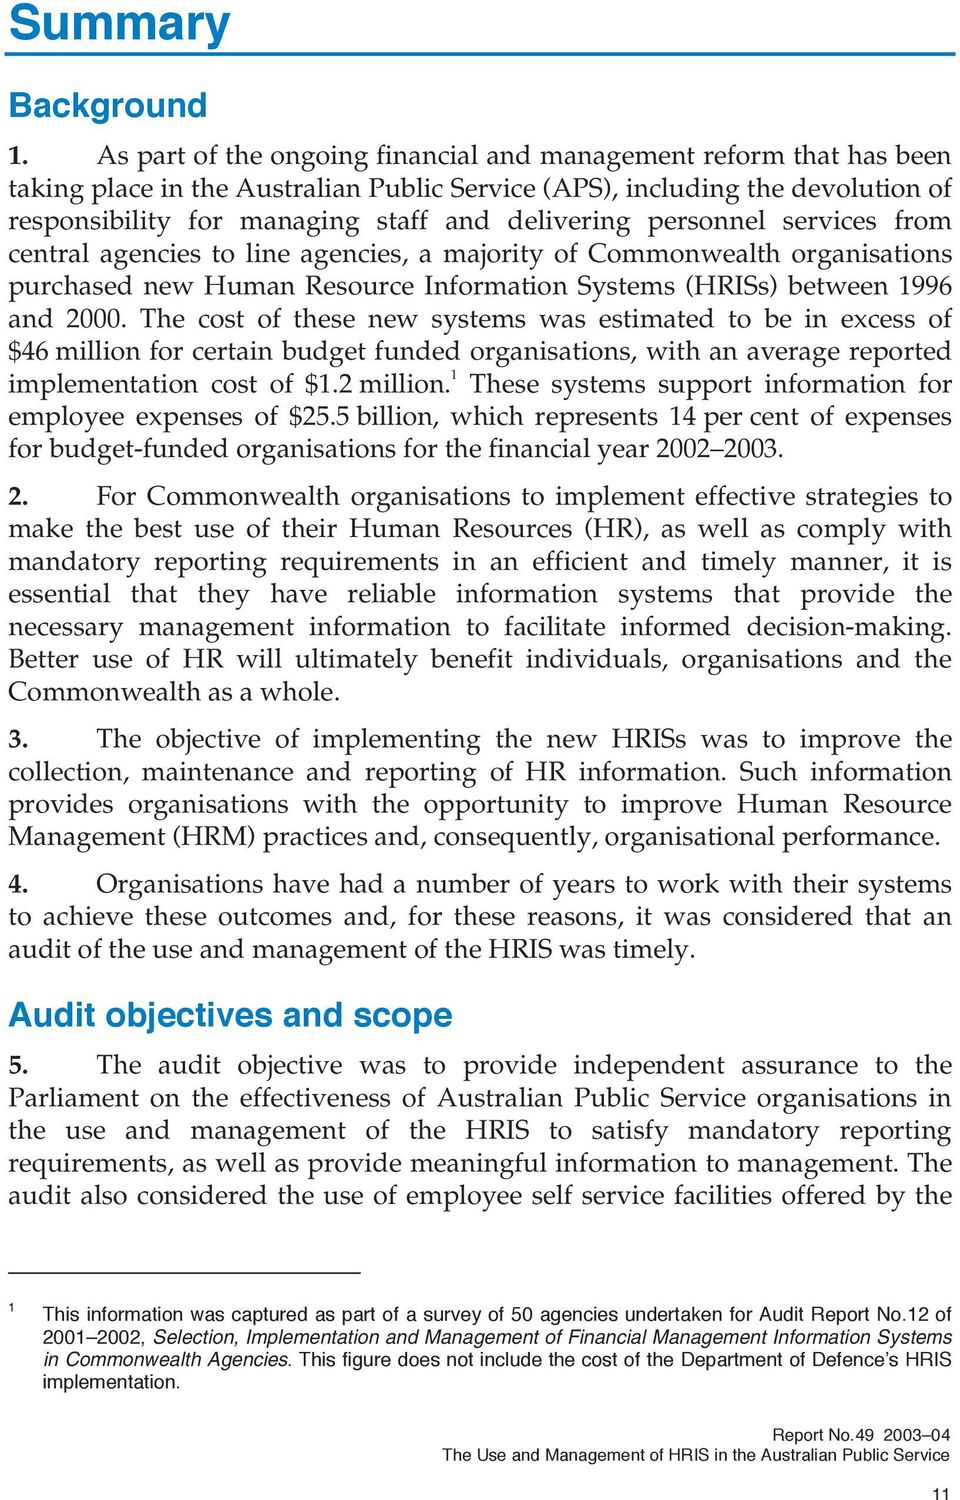 personnel services from central agencies to line agencies, a majority of Commonwealth organisations purchased new Human Resource Information Systems (HRISs) between 1996 and 2000.